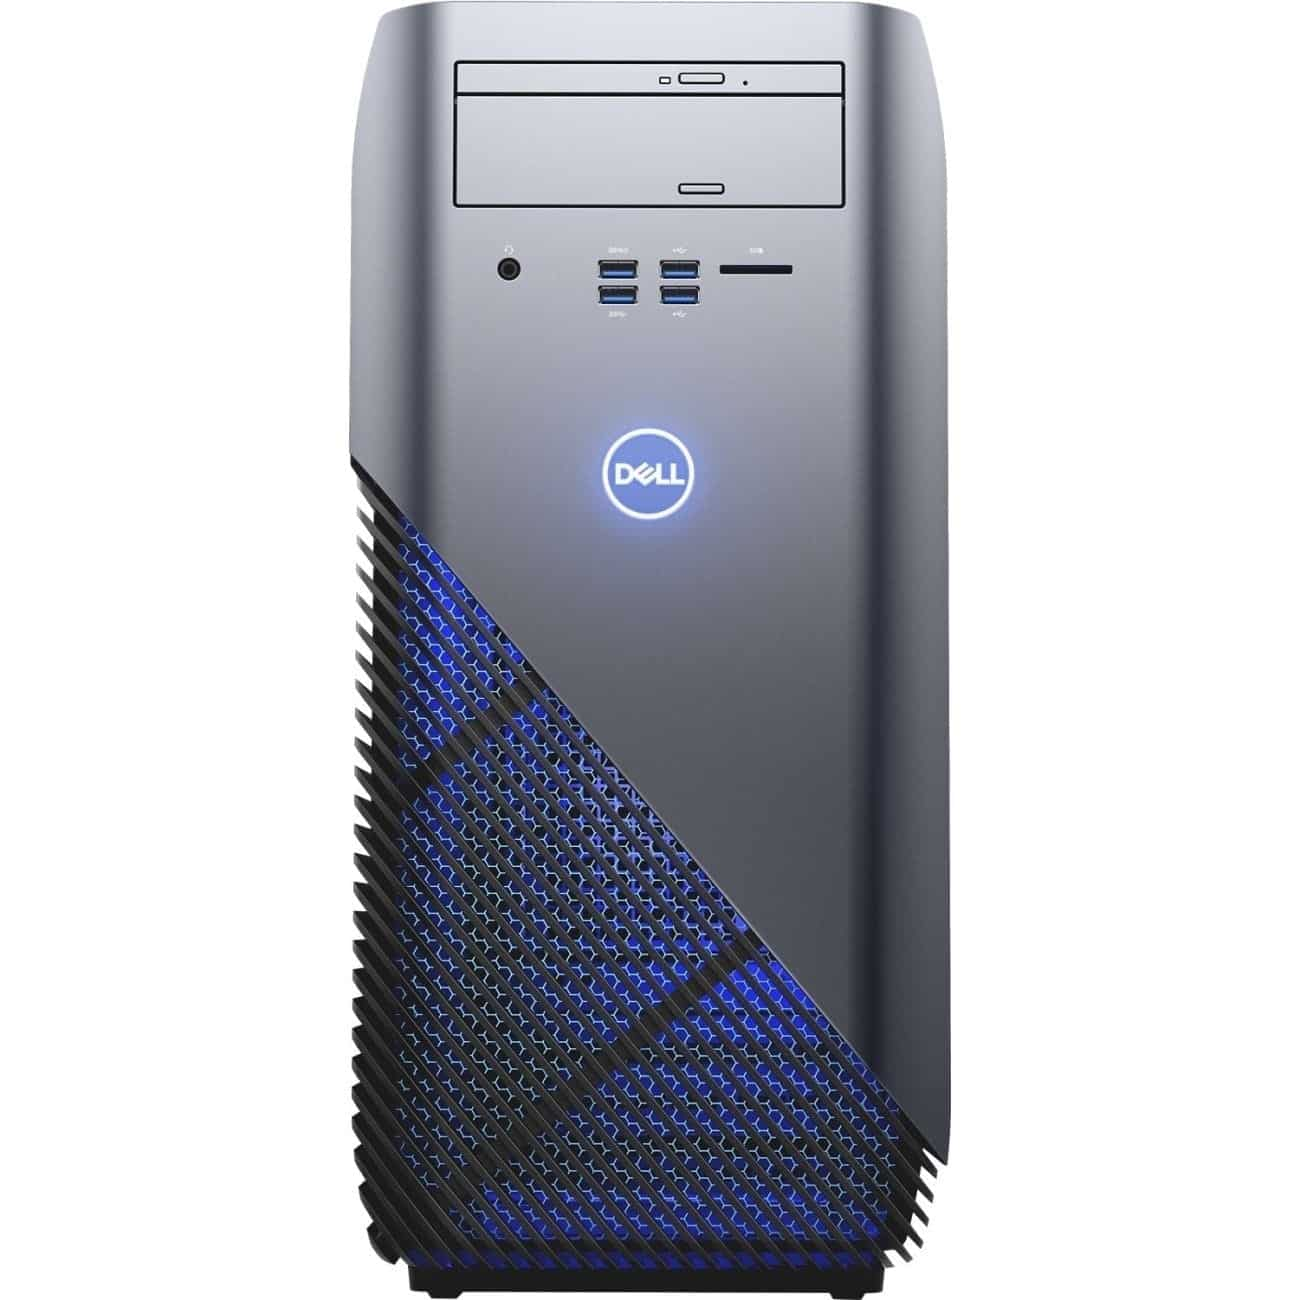 Dell Inspiron Gaming Desktop Best Gaming PCs Under 1000 for 2018